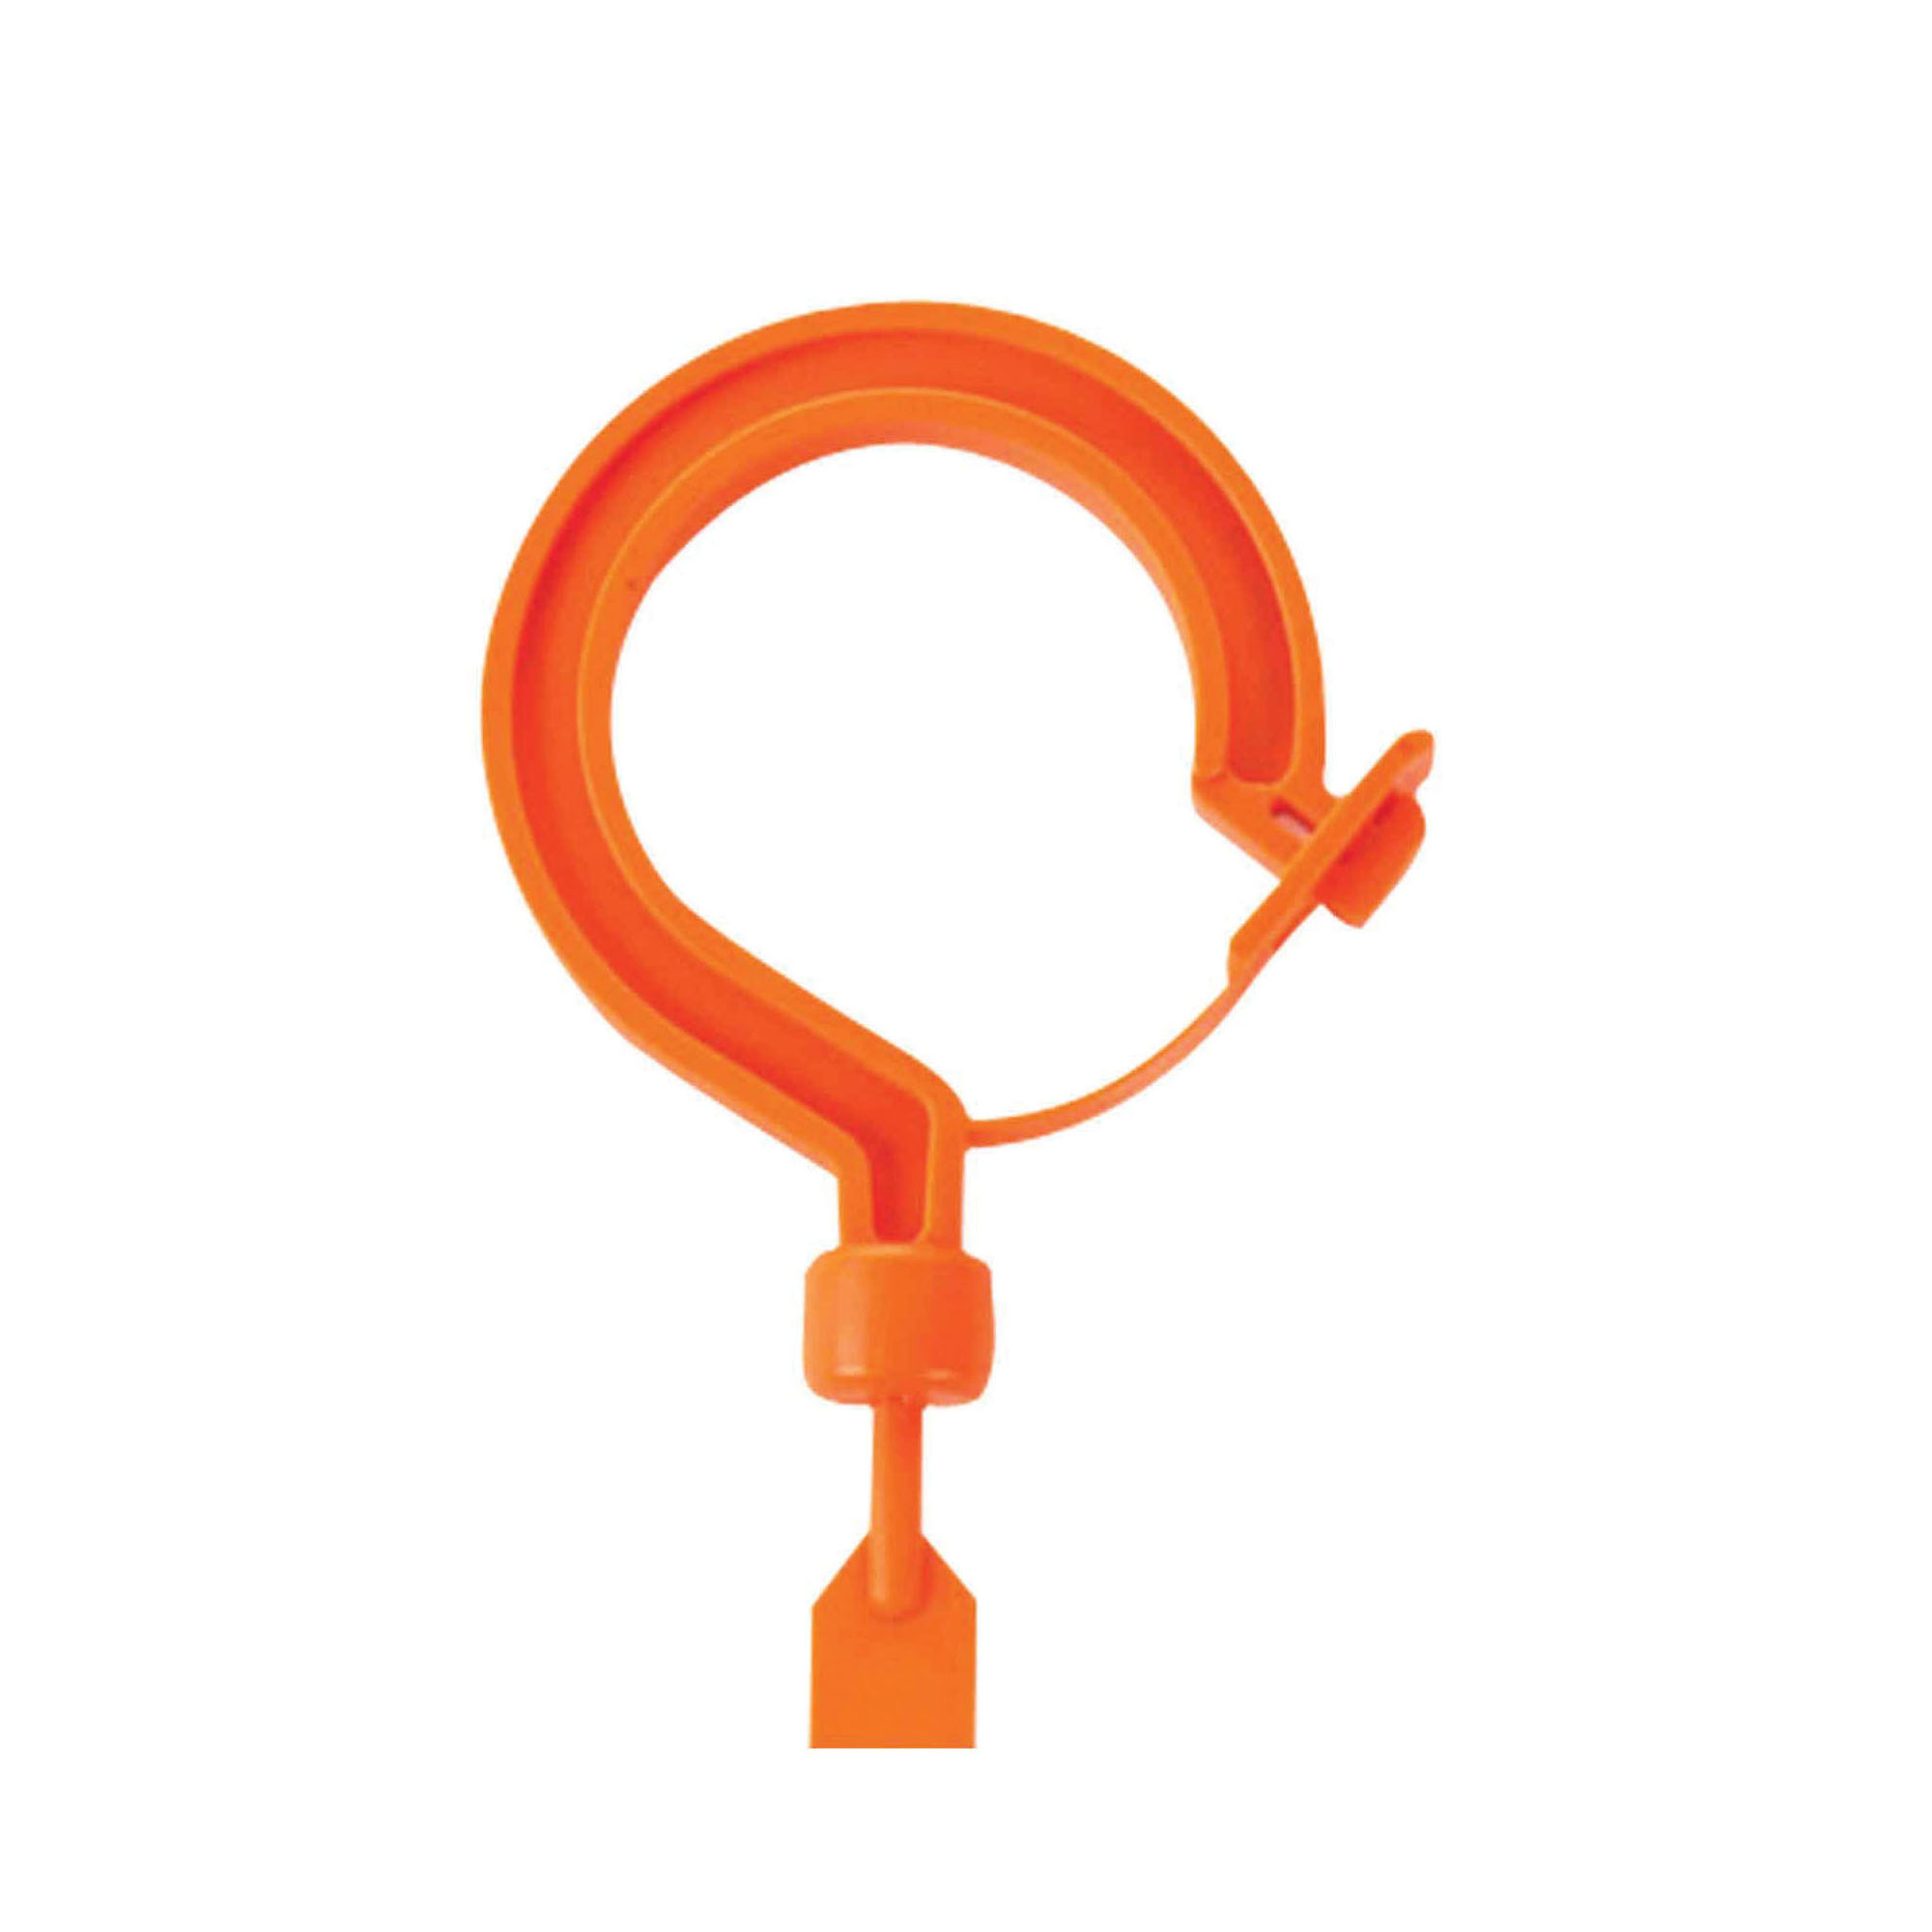 Squids® 33402 3540S Tie Hook, 11.8 in L, Large Locking Hook, 44 lb Load, Nylon 6.6, Hi-Viz Orange